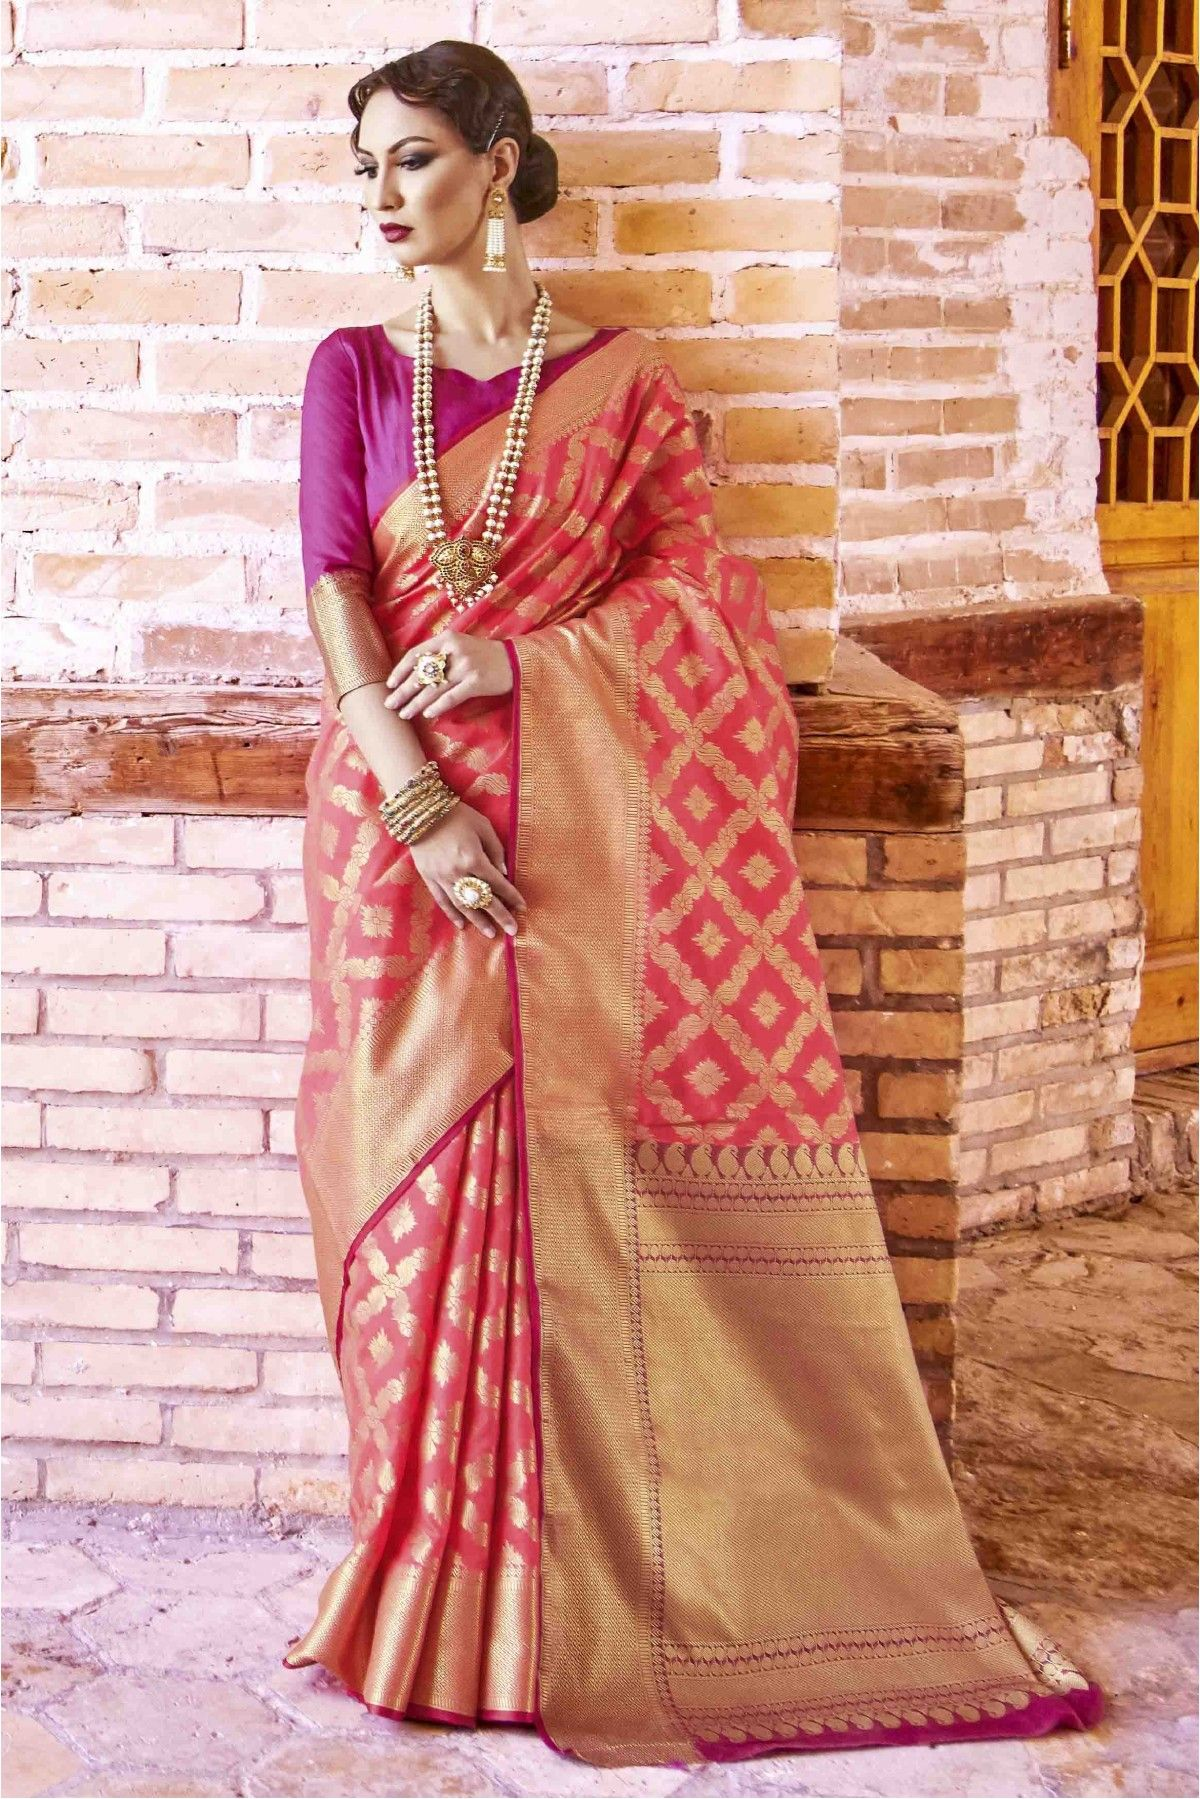 277c3e4a26 Buy Silk Designer Saree In Light Pink Colour for women @ ninecolours.com.  Worldwide Free Shipping Available!